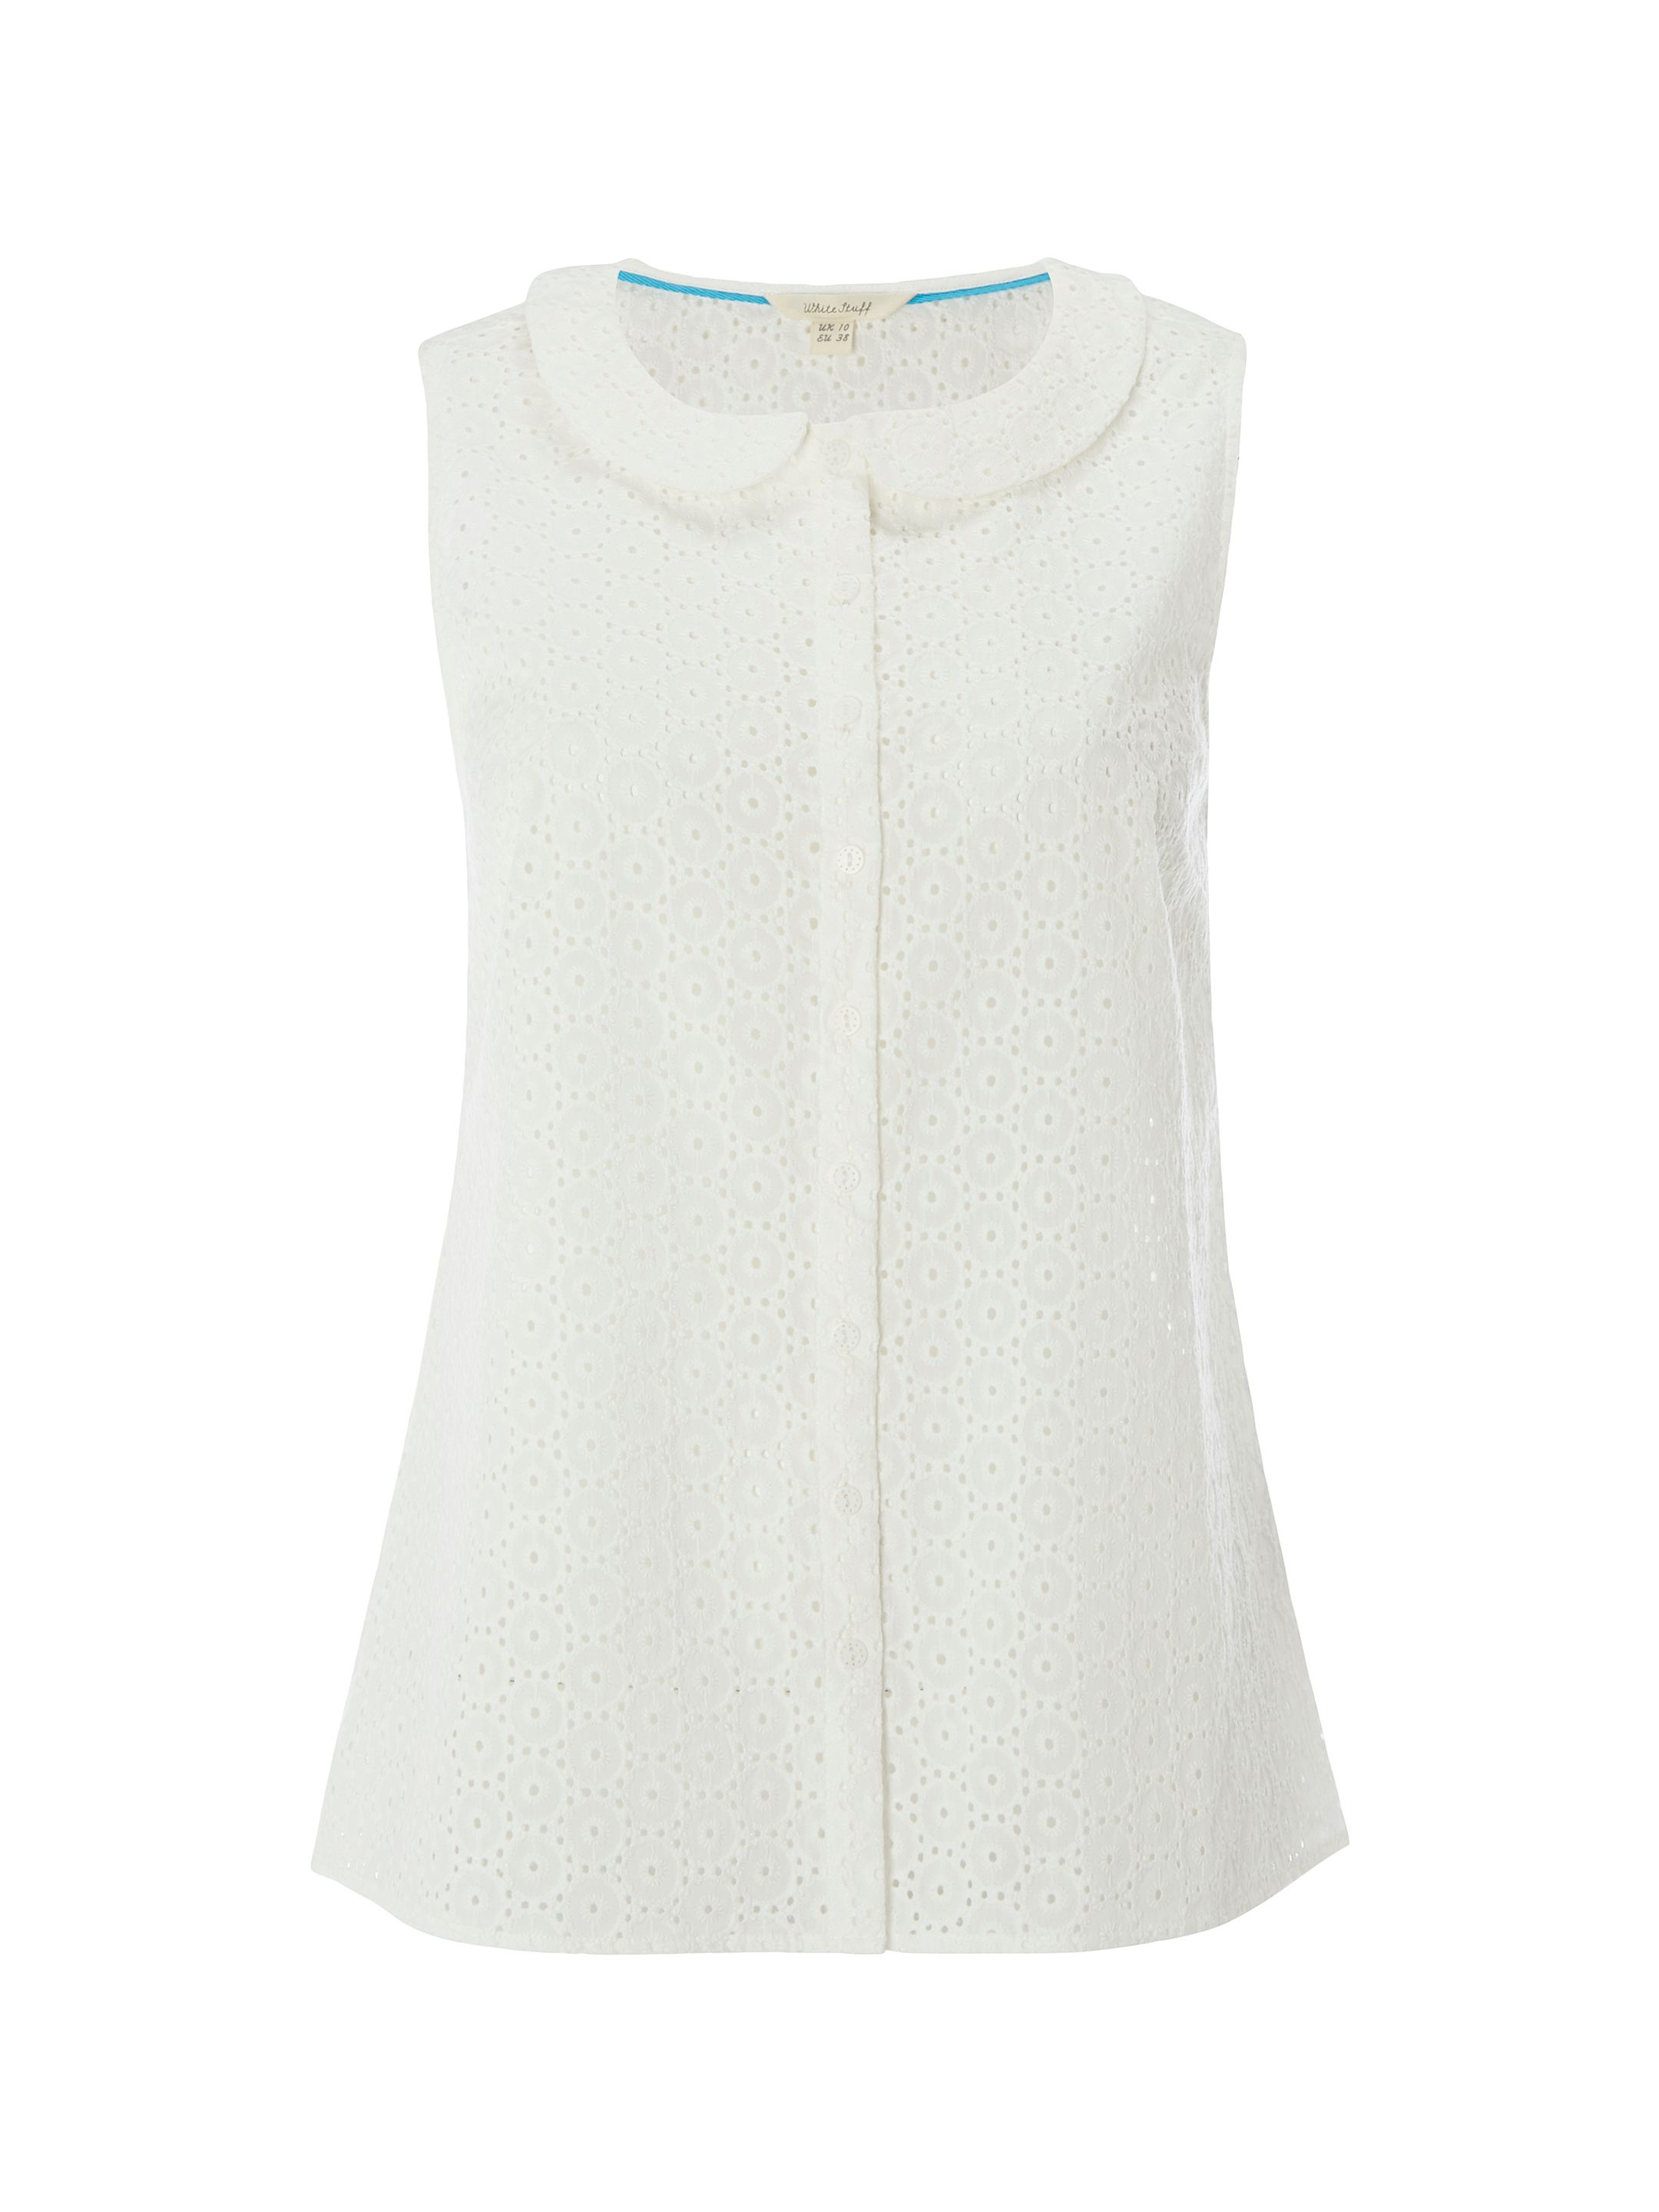 White Stuff Broderie Shirt Vest, White